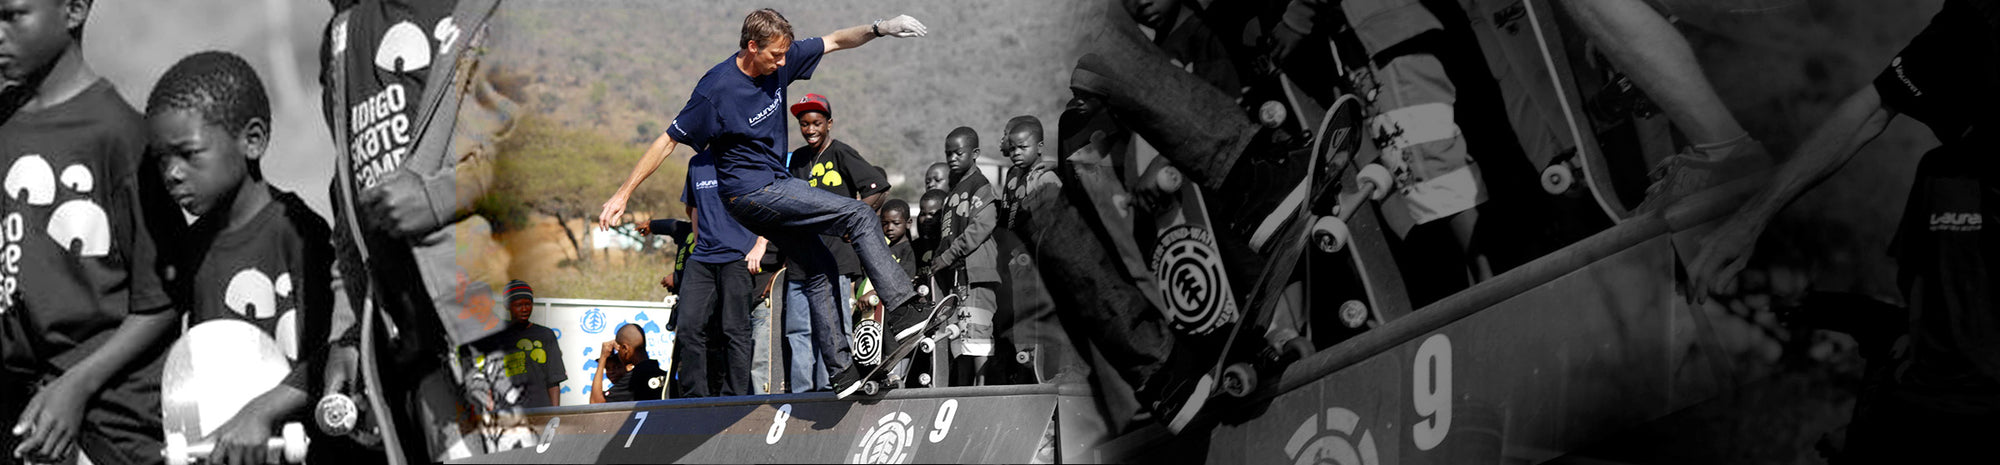 Lo skateboard: da Tony Hawk a un villaggio Zulu